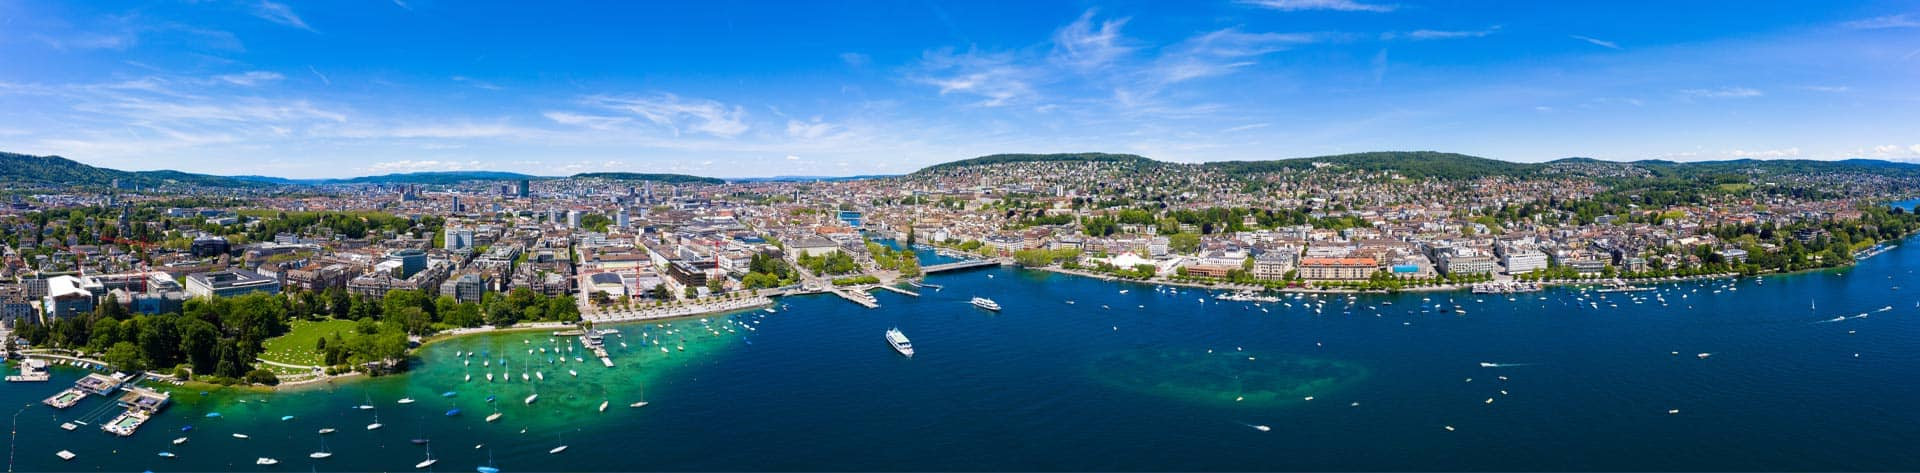 Panoramic Aerial View Of Zurich City In Switzerland AdobeStock 272422779 1920x